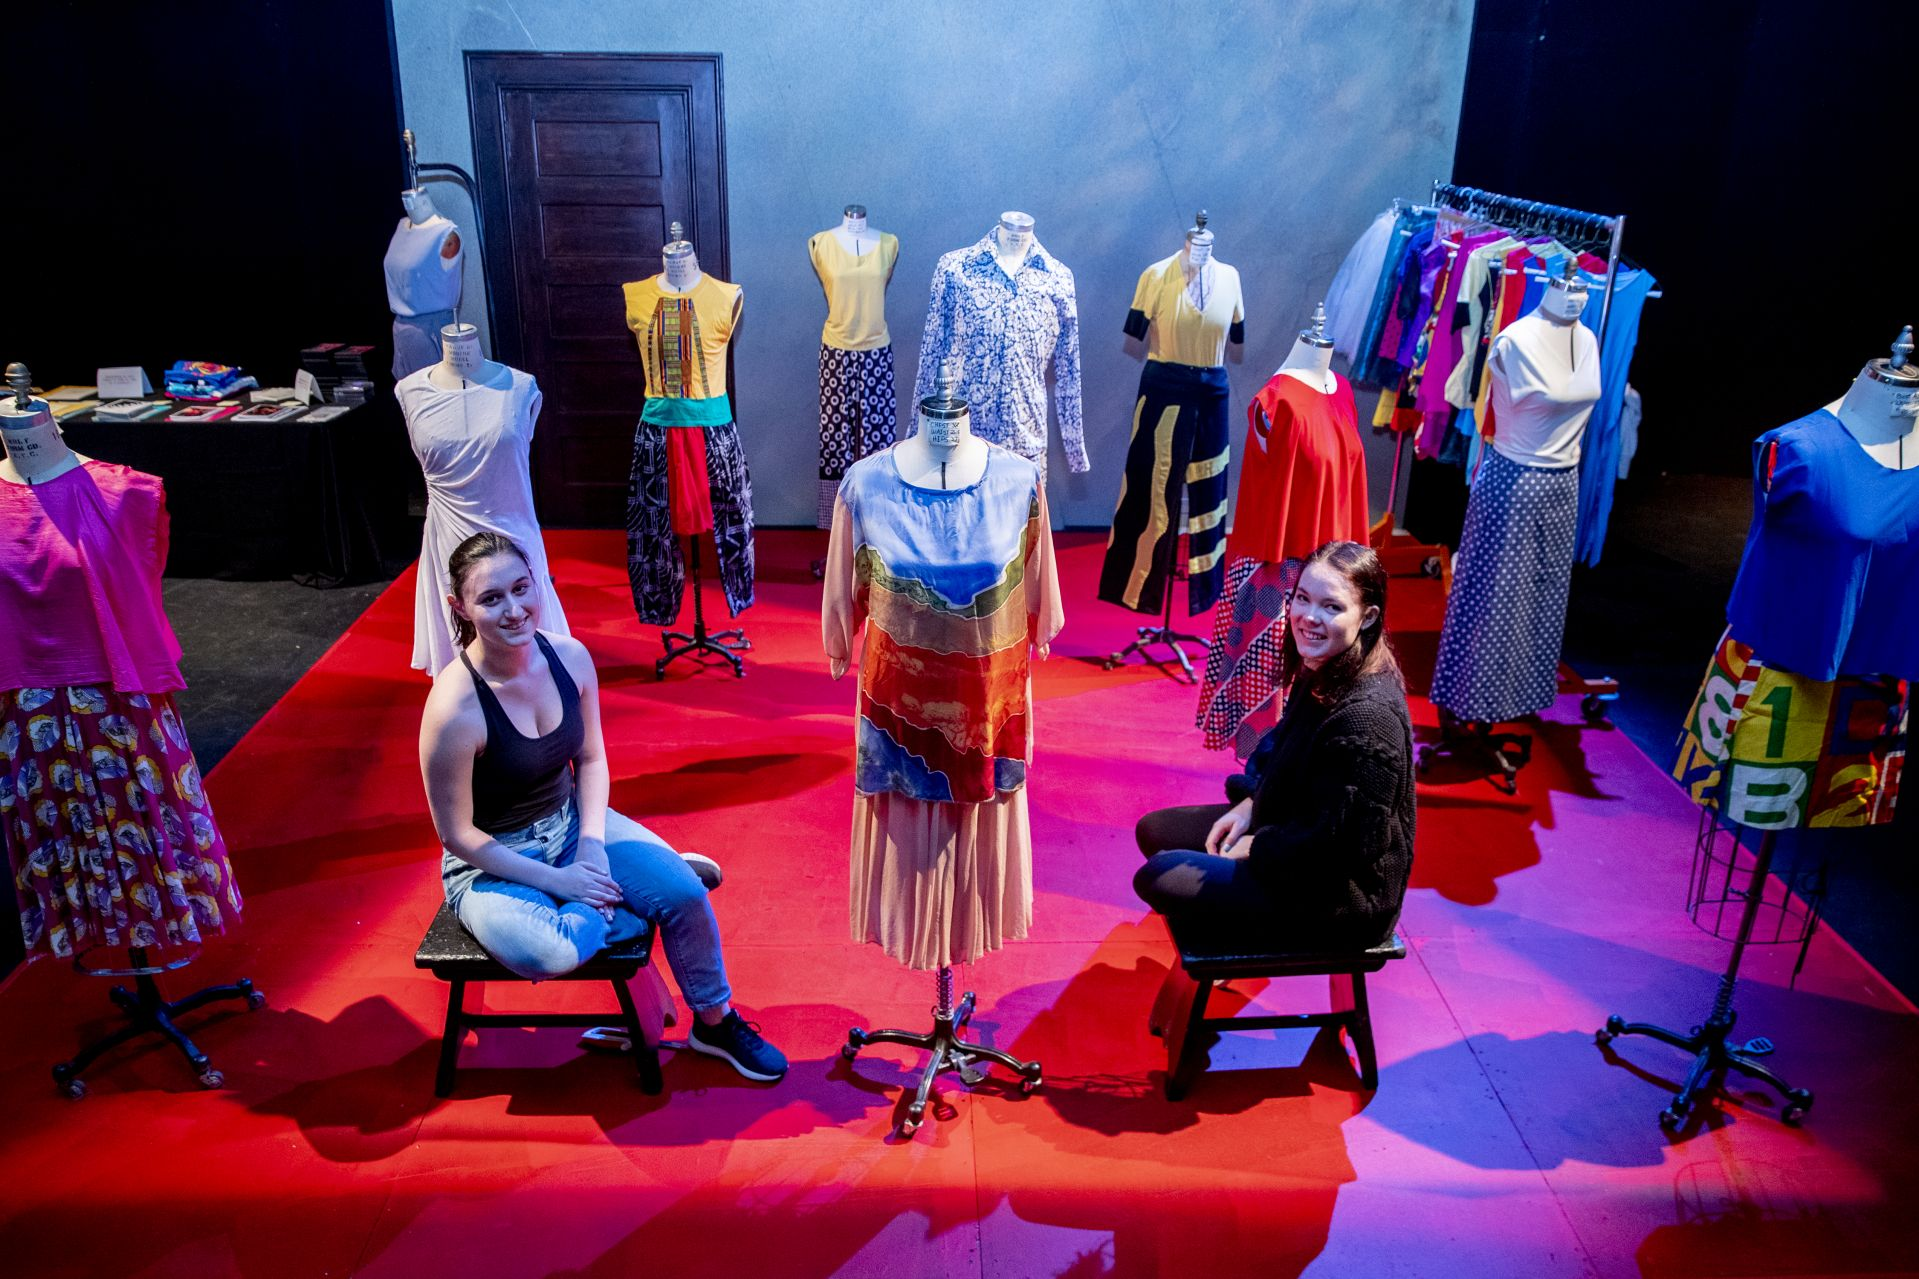 In Gannett Theater, Sara Hollenberg '19 of Stamford, Conn., and Rebecca Howard '19 of Aspen, Colo., pose among items that they curated for an interactive dance archives exhibition. (Phyllis Graber Jensen/Bates College)